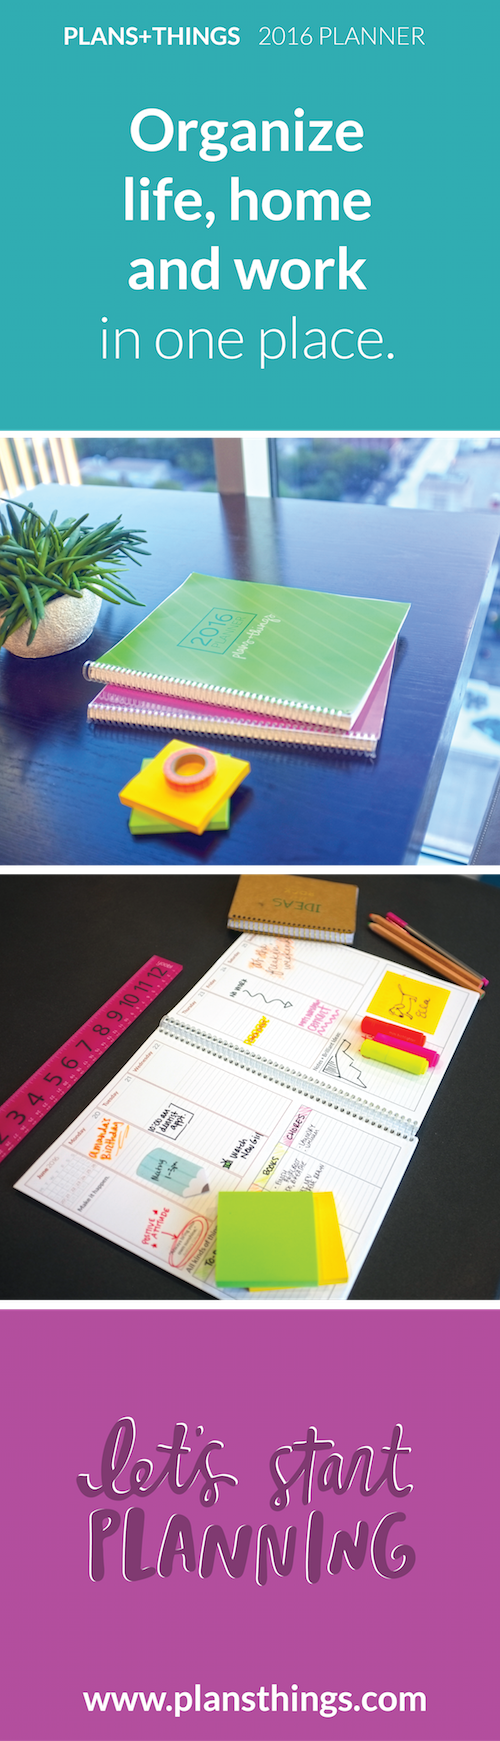 Organize life, home and work in one place with the 2016 Plans+Things Planner! #planner